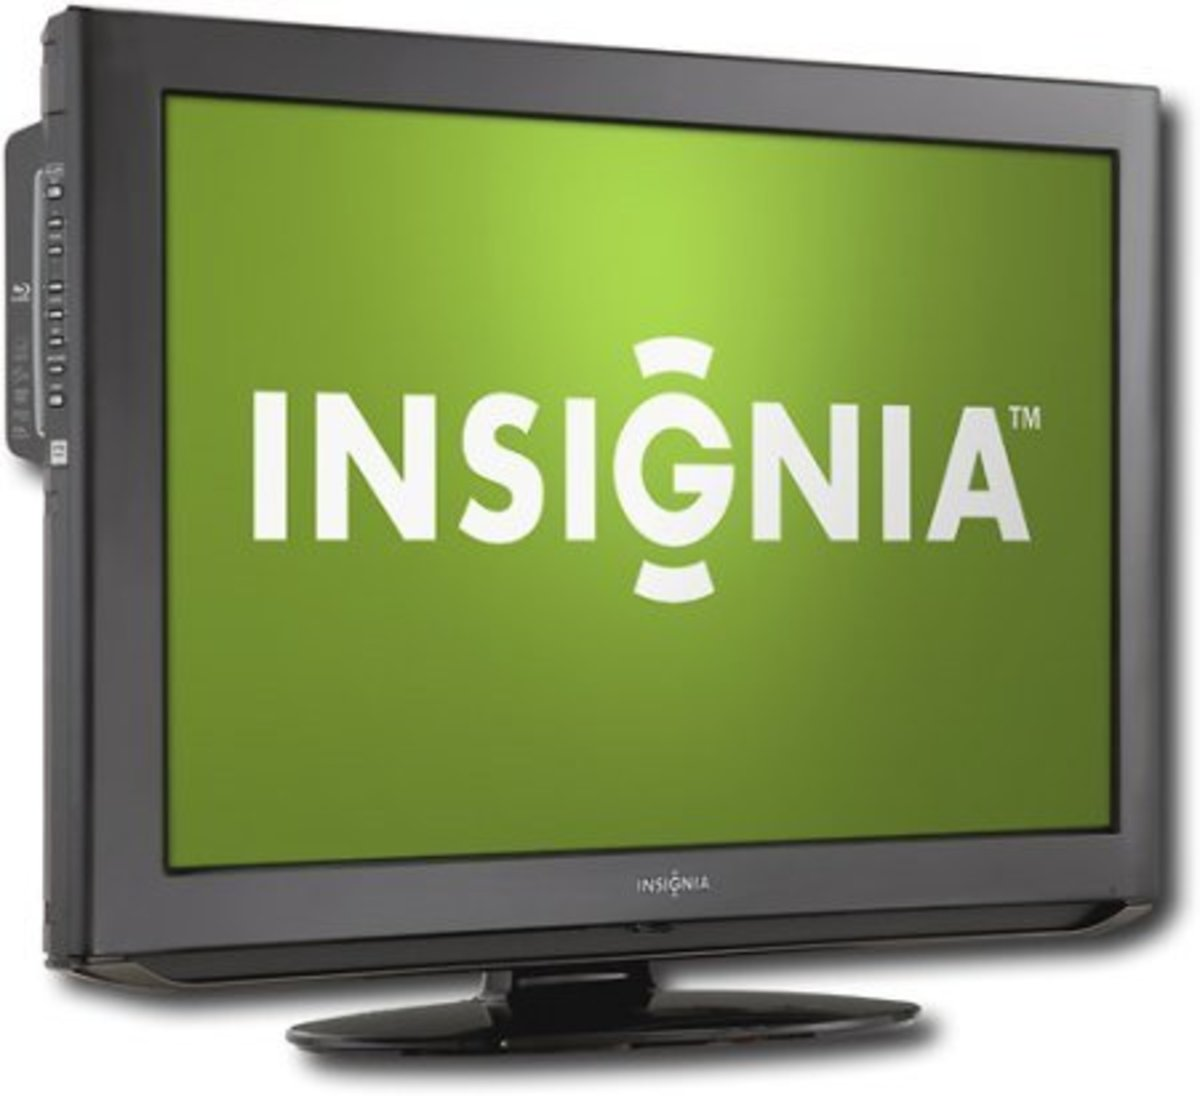 Updating Insignia TV Firmware